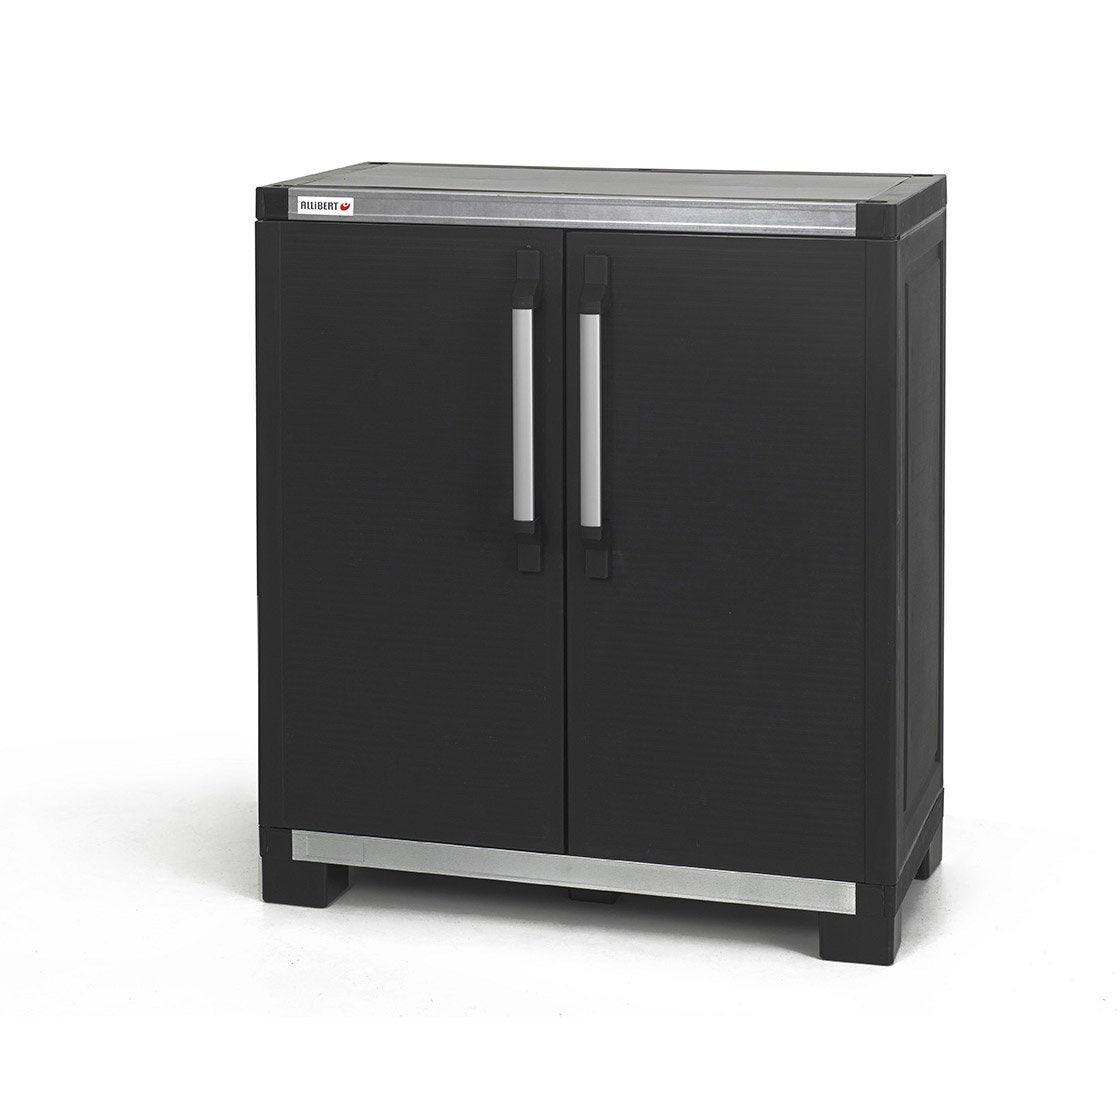 Armoire basse r sine 1 tablette allibert xl pro x x cm ler - Armoire plastique leroy merlin ...